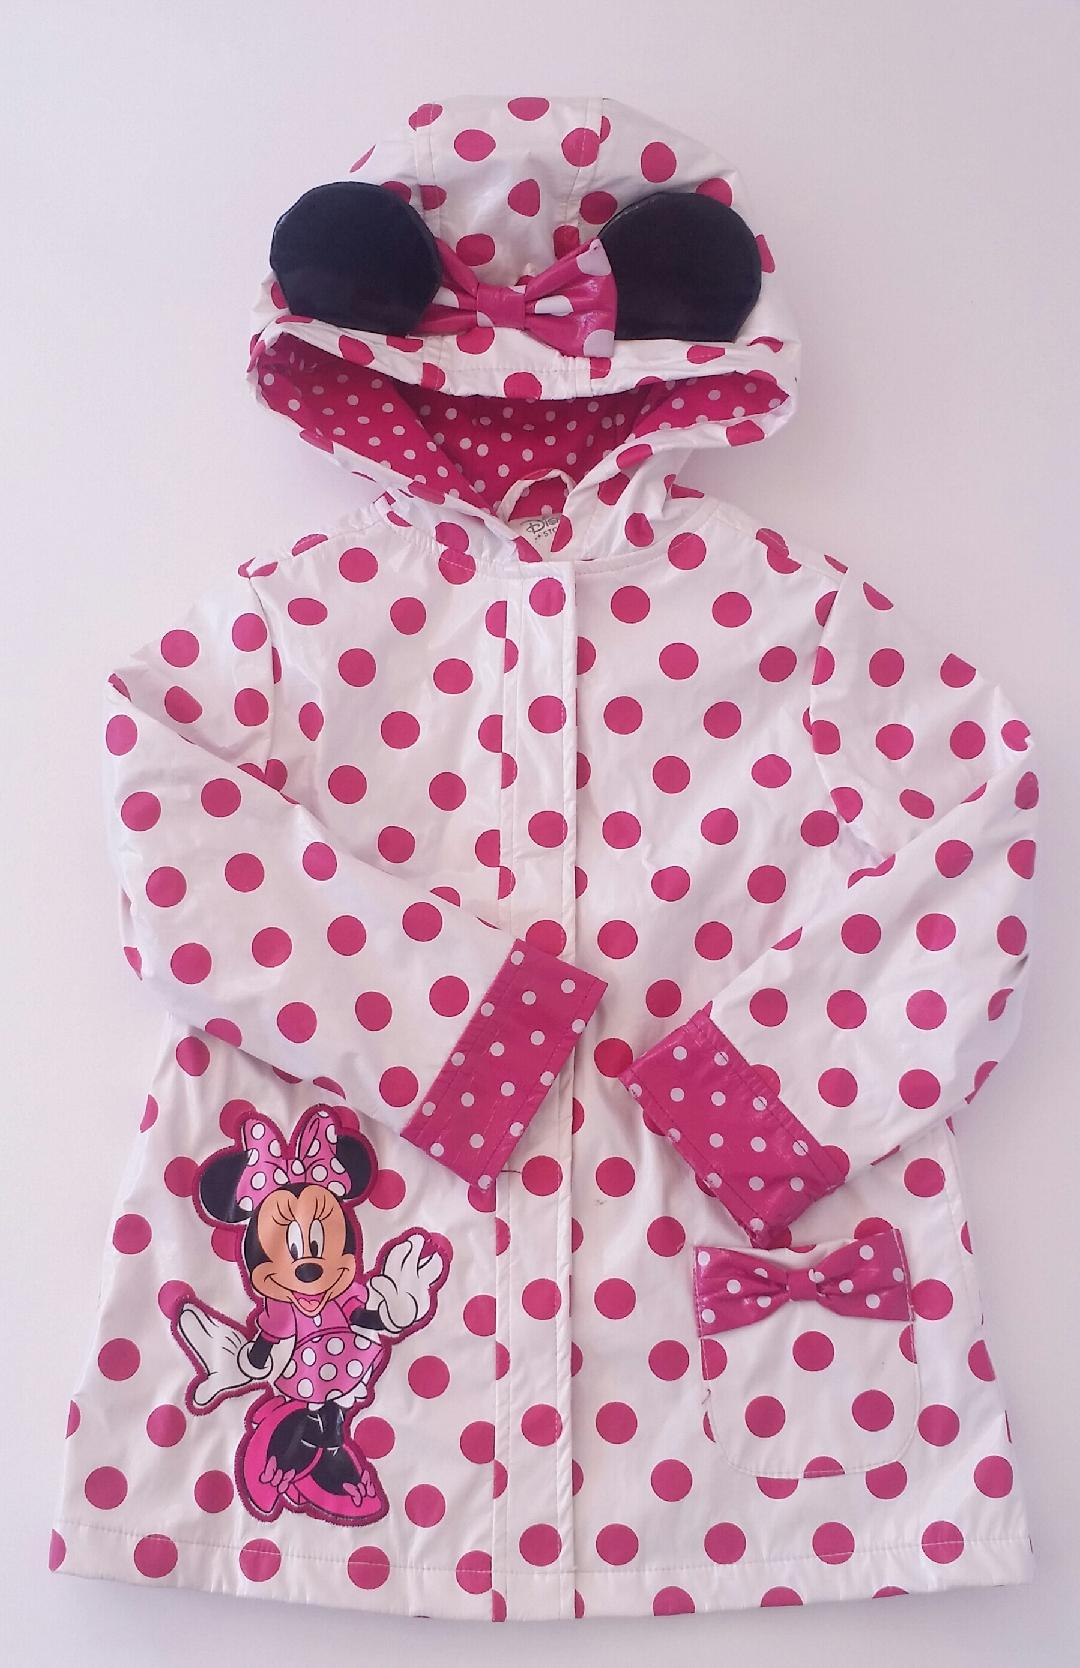 Disney-2-YEARS-Polka-Dot-Waterproof-Outerwear_2097632A.jpg